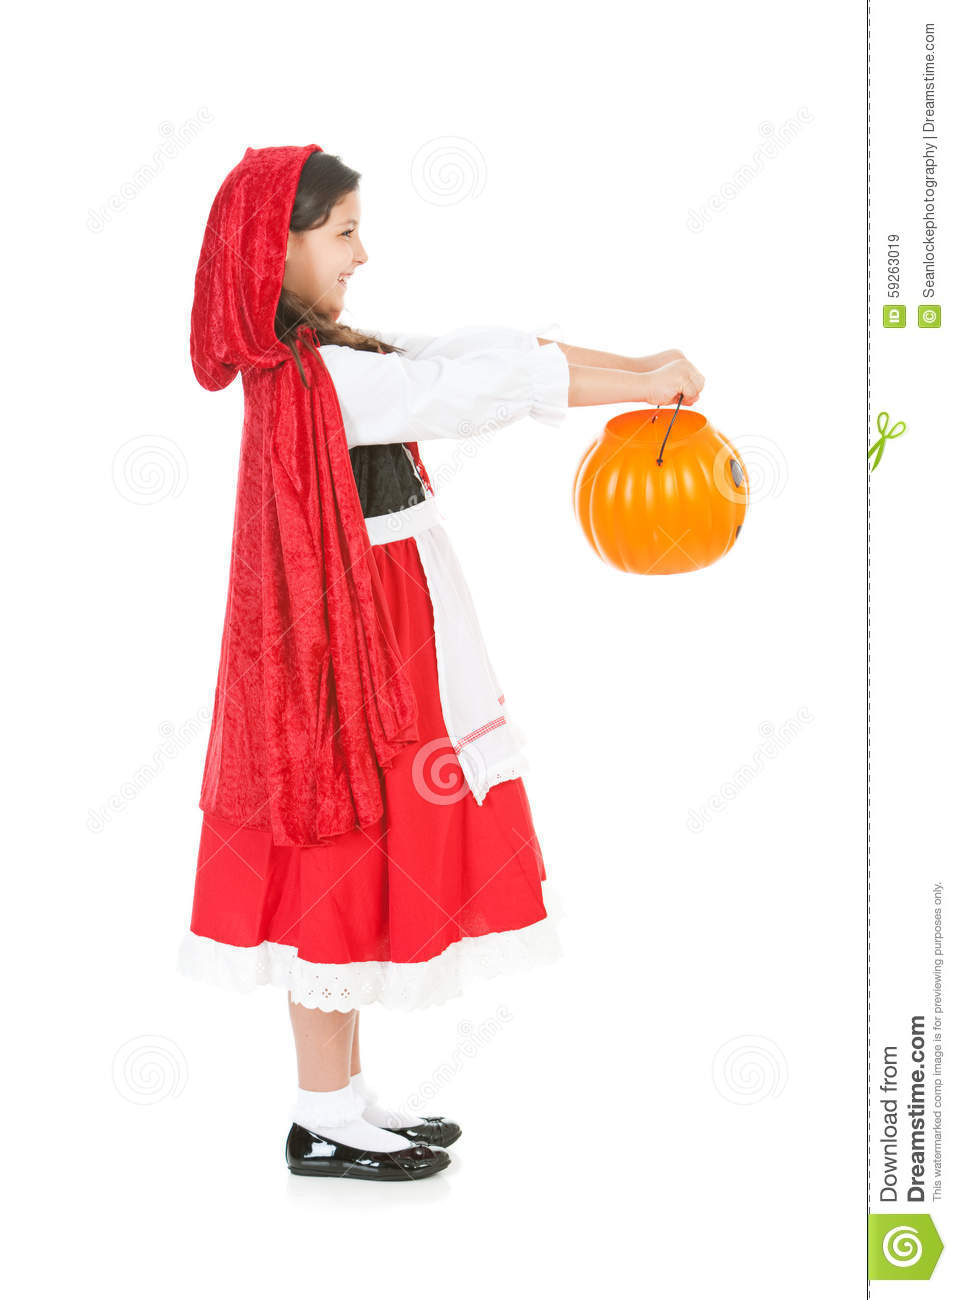 Halloween: Red Riding Hood Holding Out Bucket